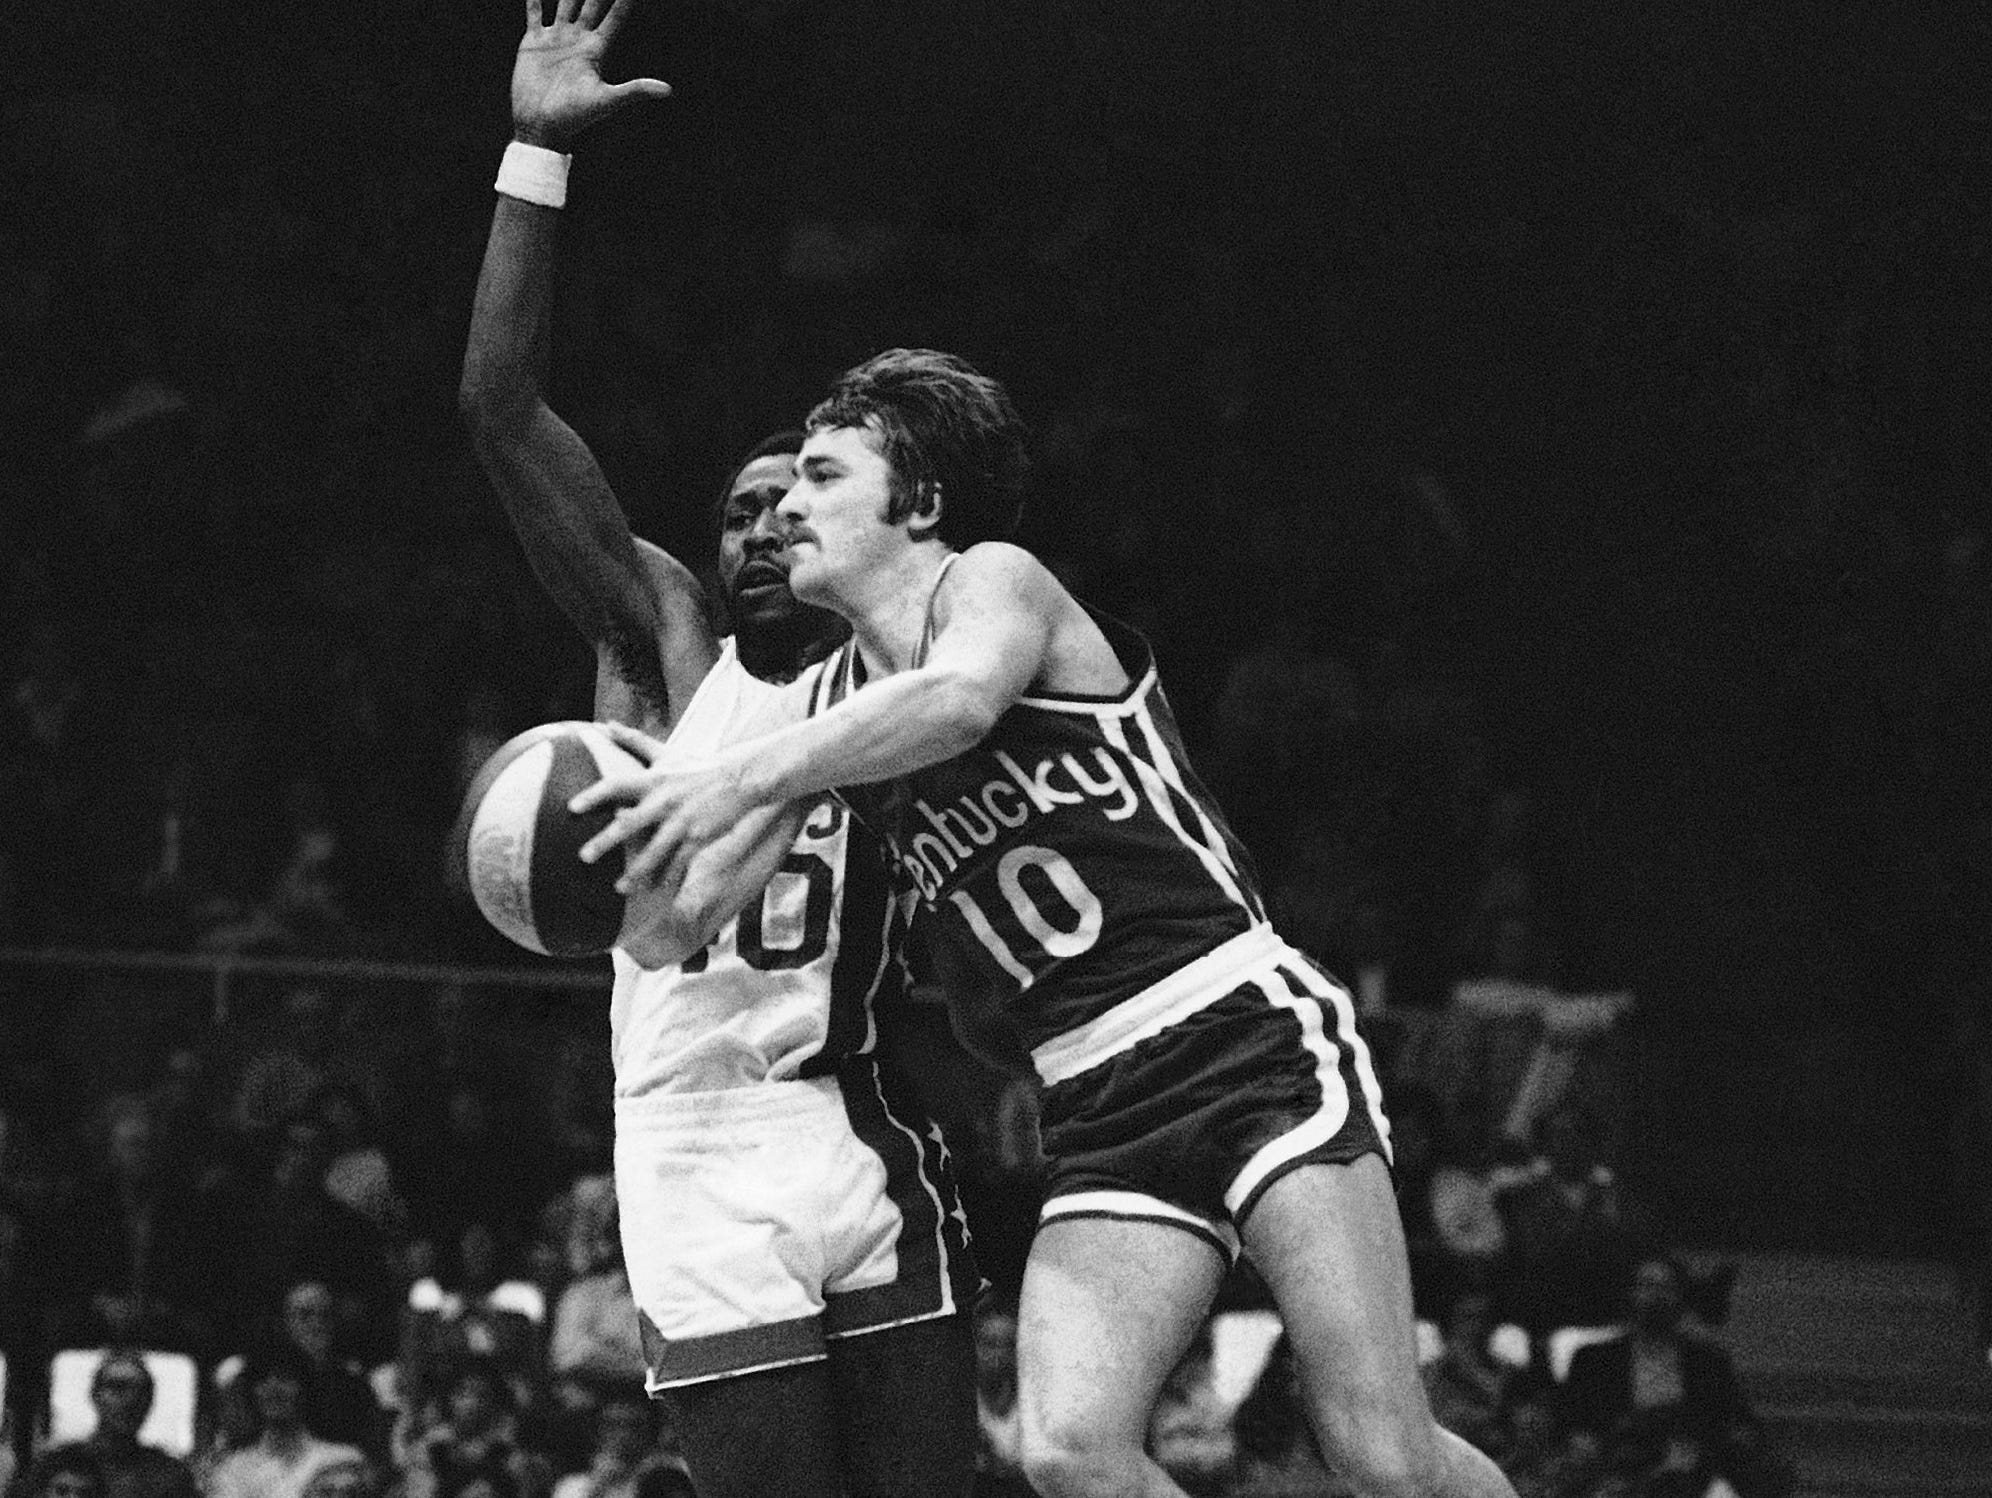 The Kentucky Colonels' Louie Dampier shown here Nov. 20, 1972.